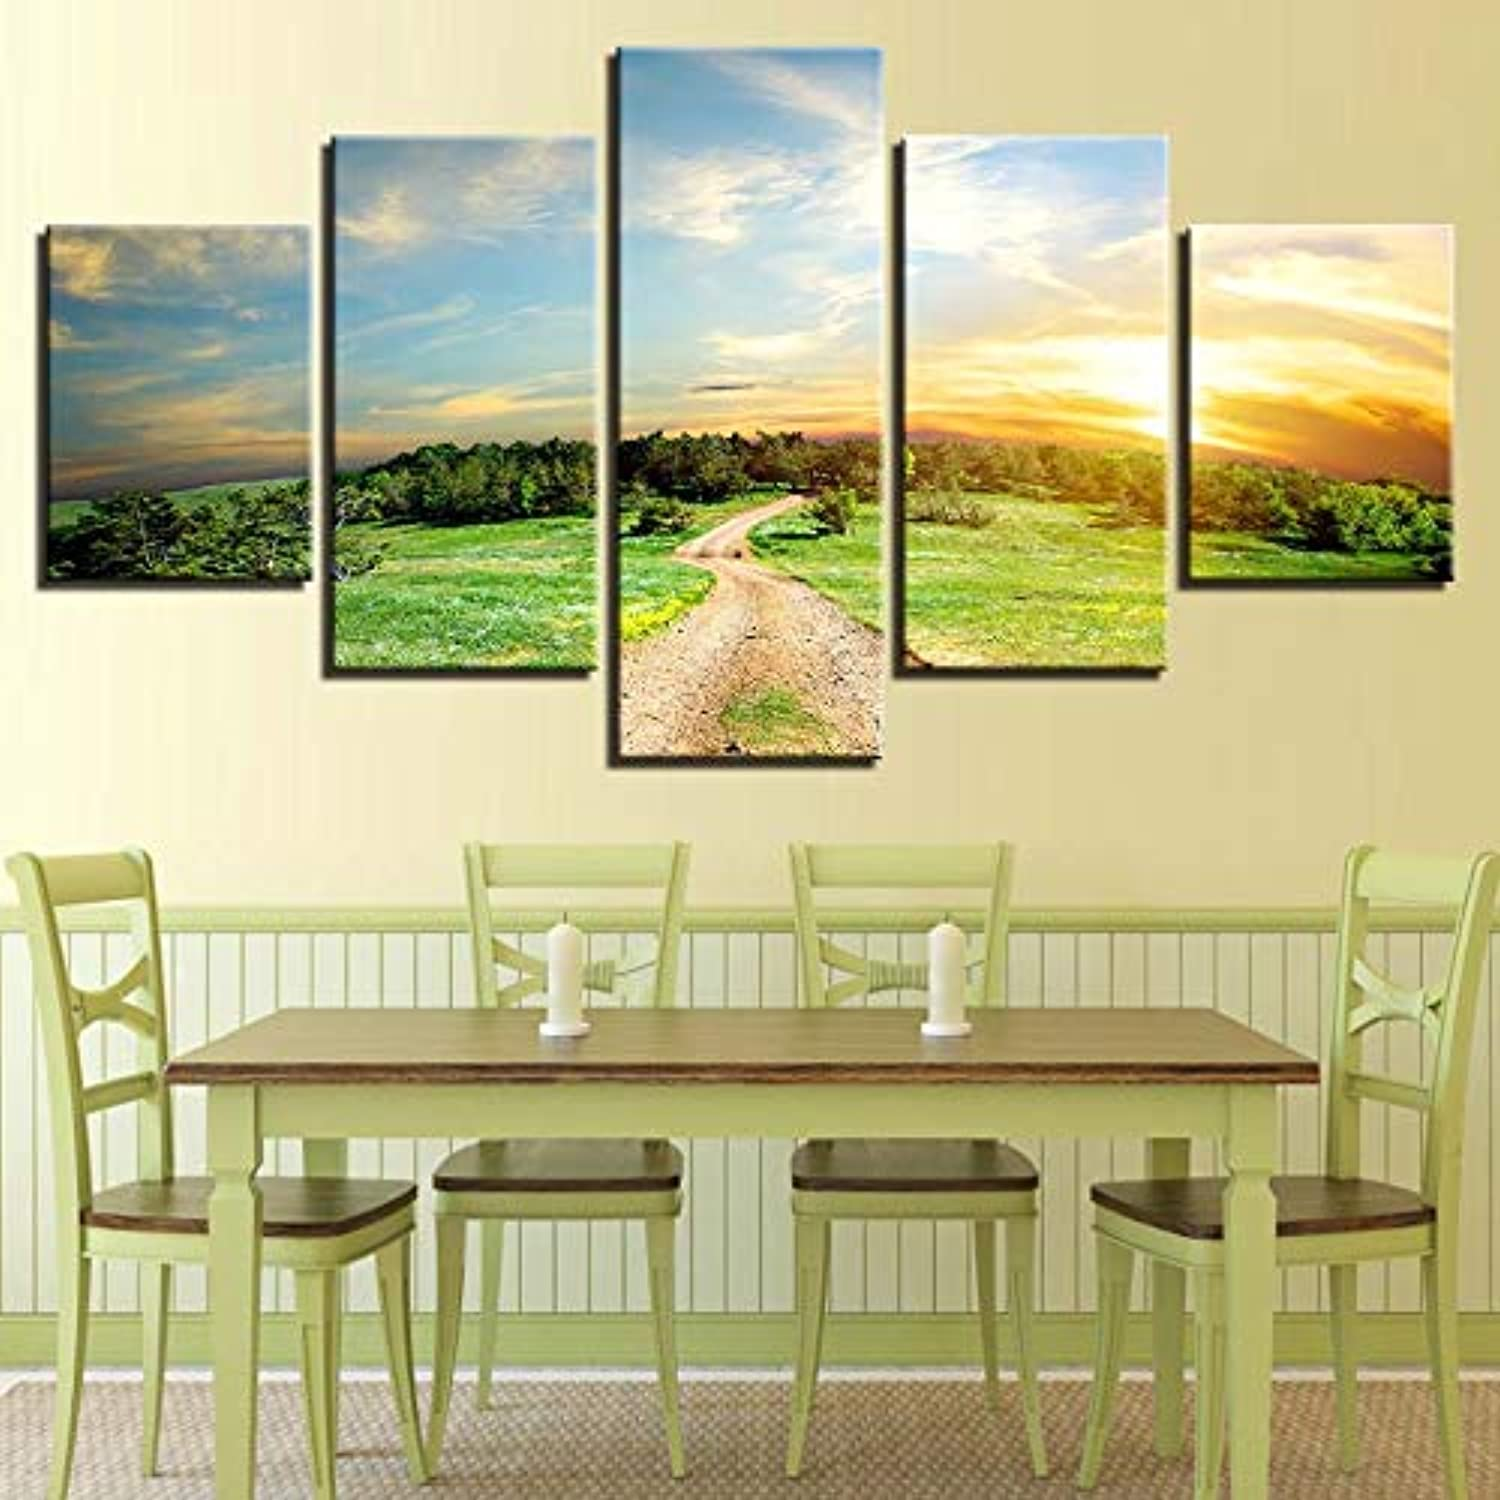 Loiazh  Image Printed On Non Woven Canvas  Wall Art Print Picture  Photo  5 Pieces  Frameless  Small Road 55x22 45x20x2 35x20x2(cm)